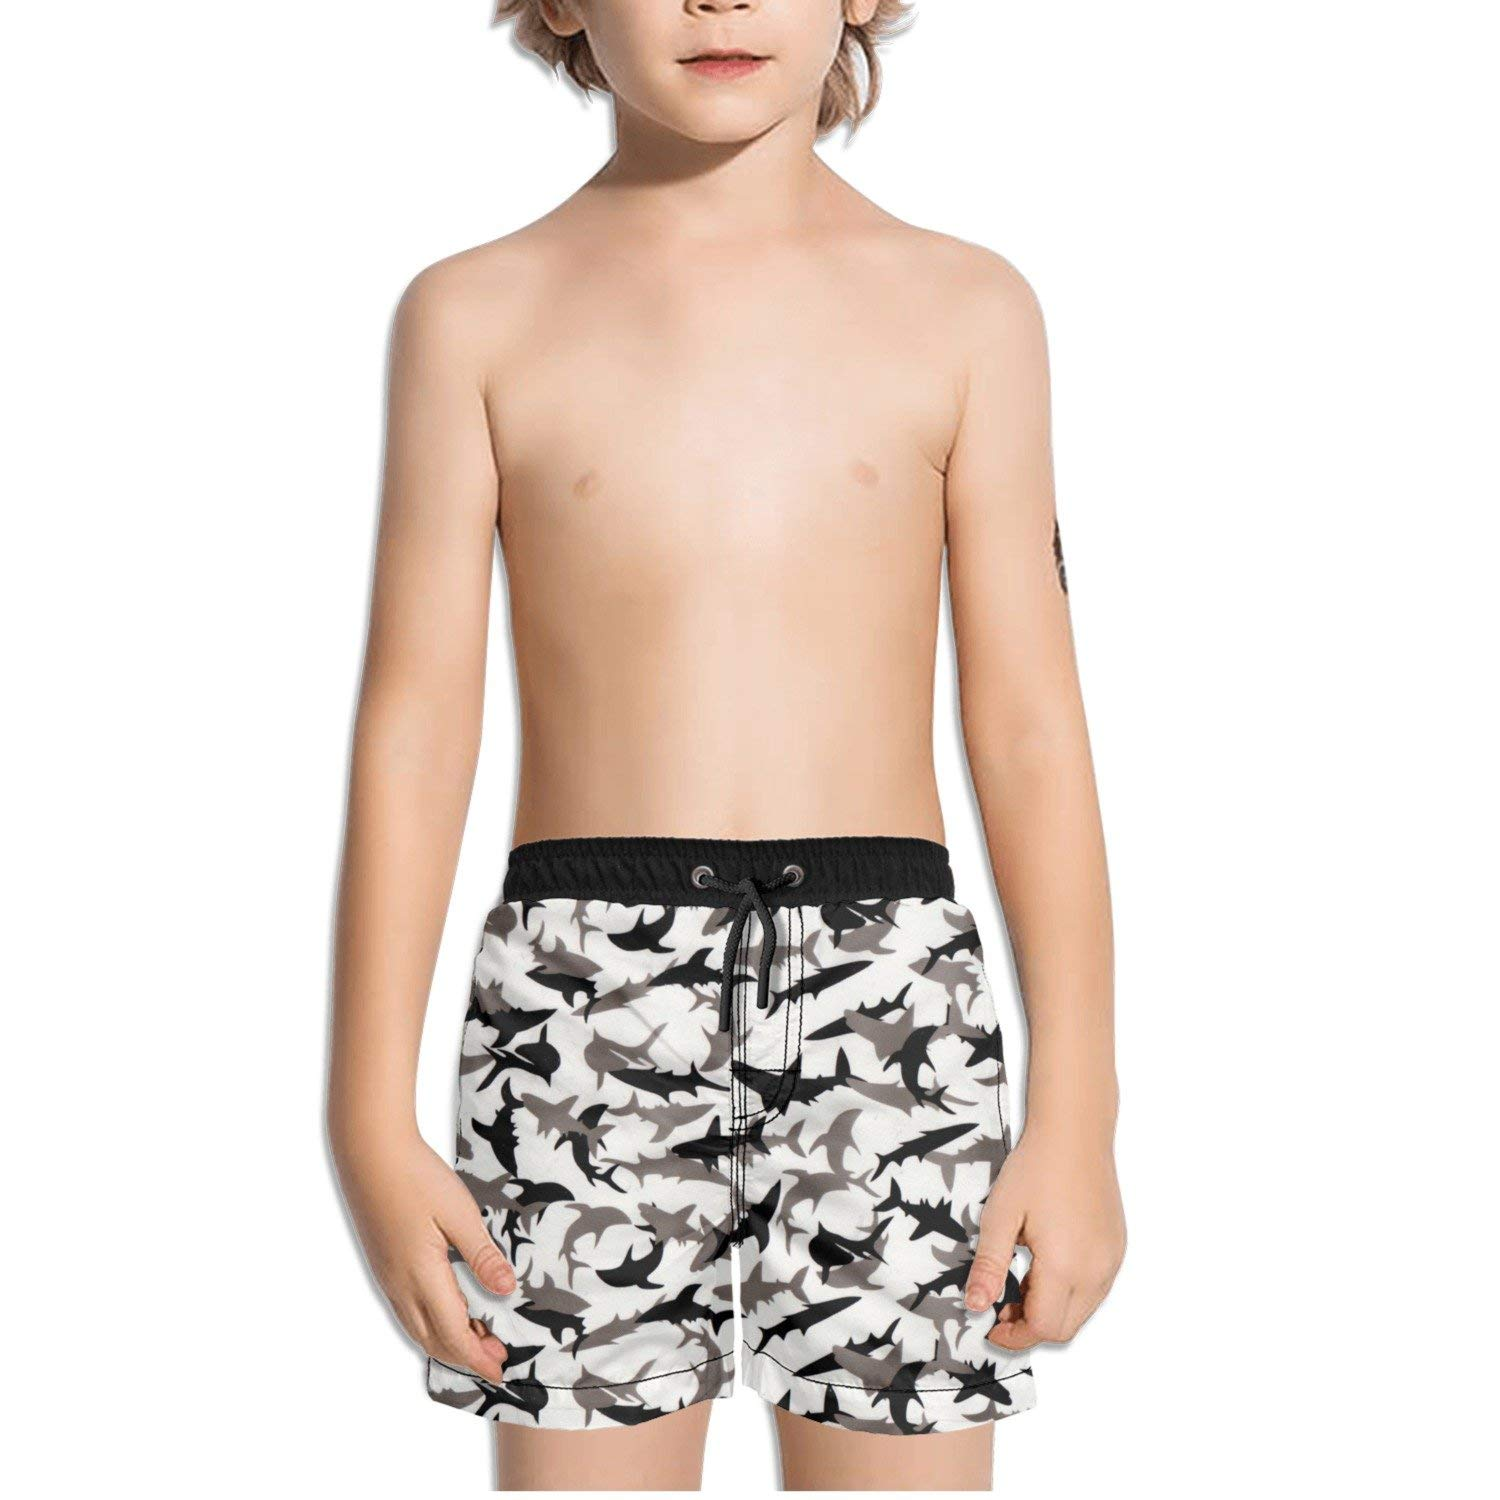 c1cf27fad5 Get Quotations · FullBo Shark Camo Little Boy's Short Swim Trunks Quick Dry  Beach Shorts